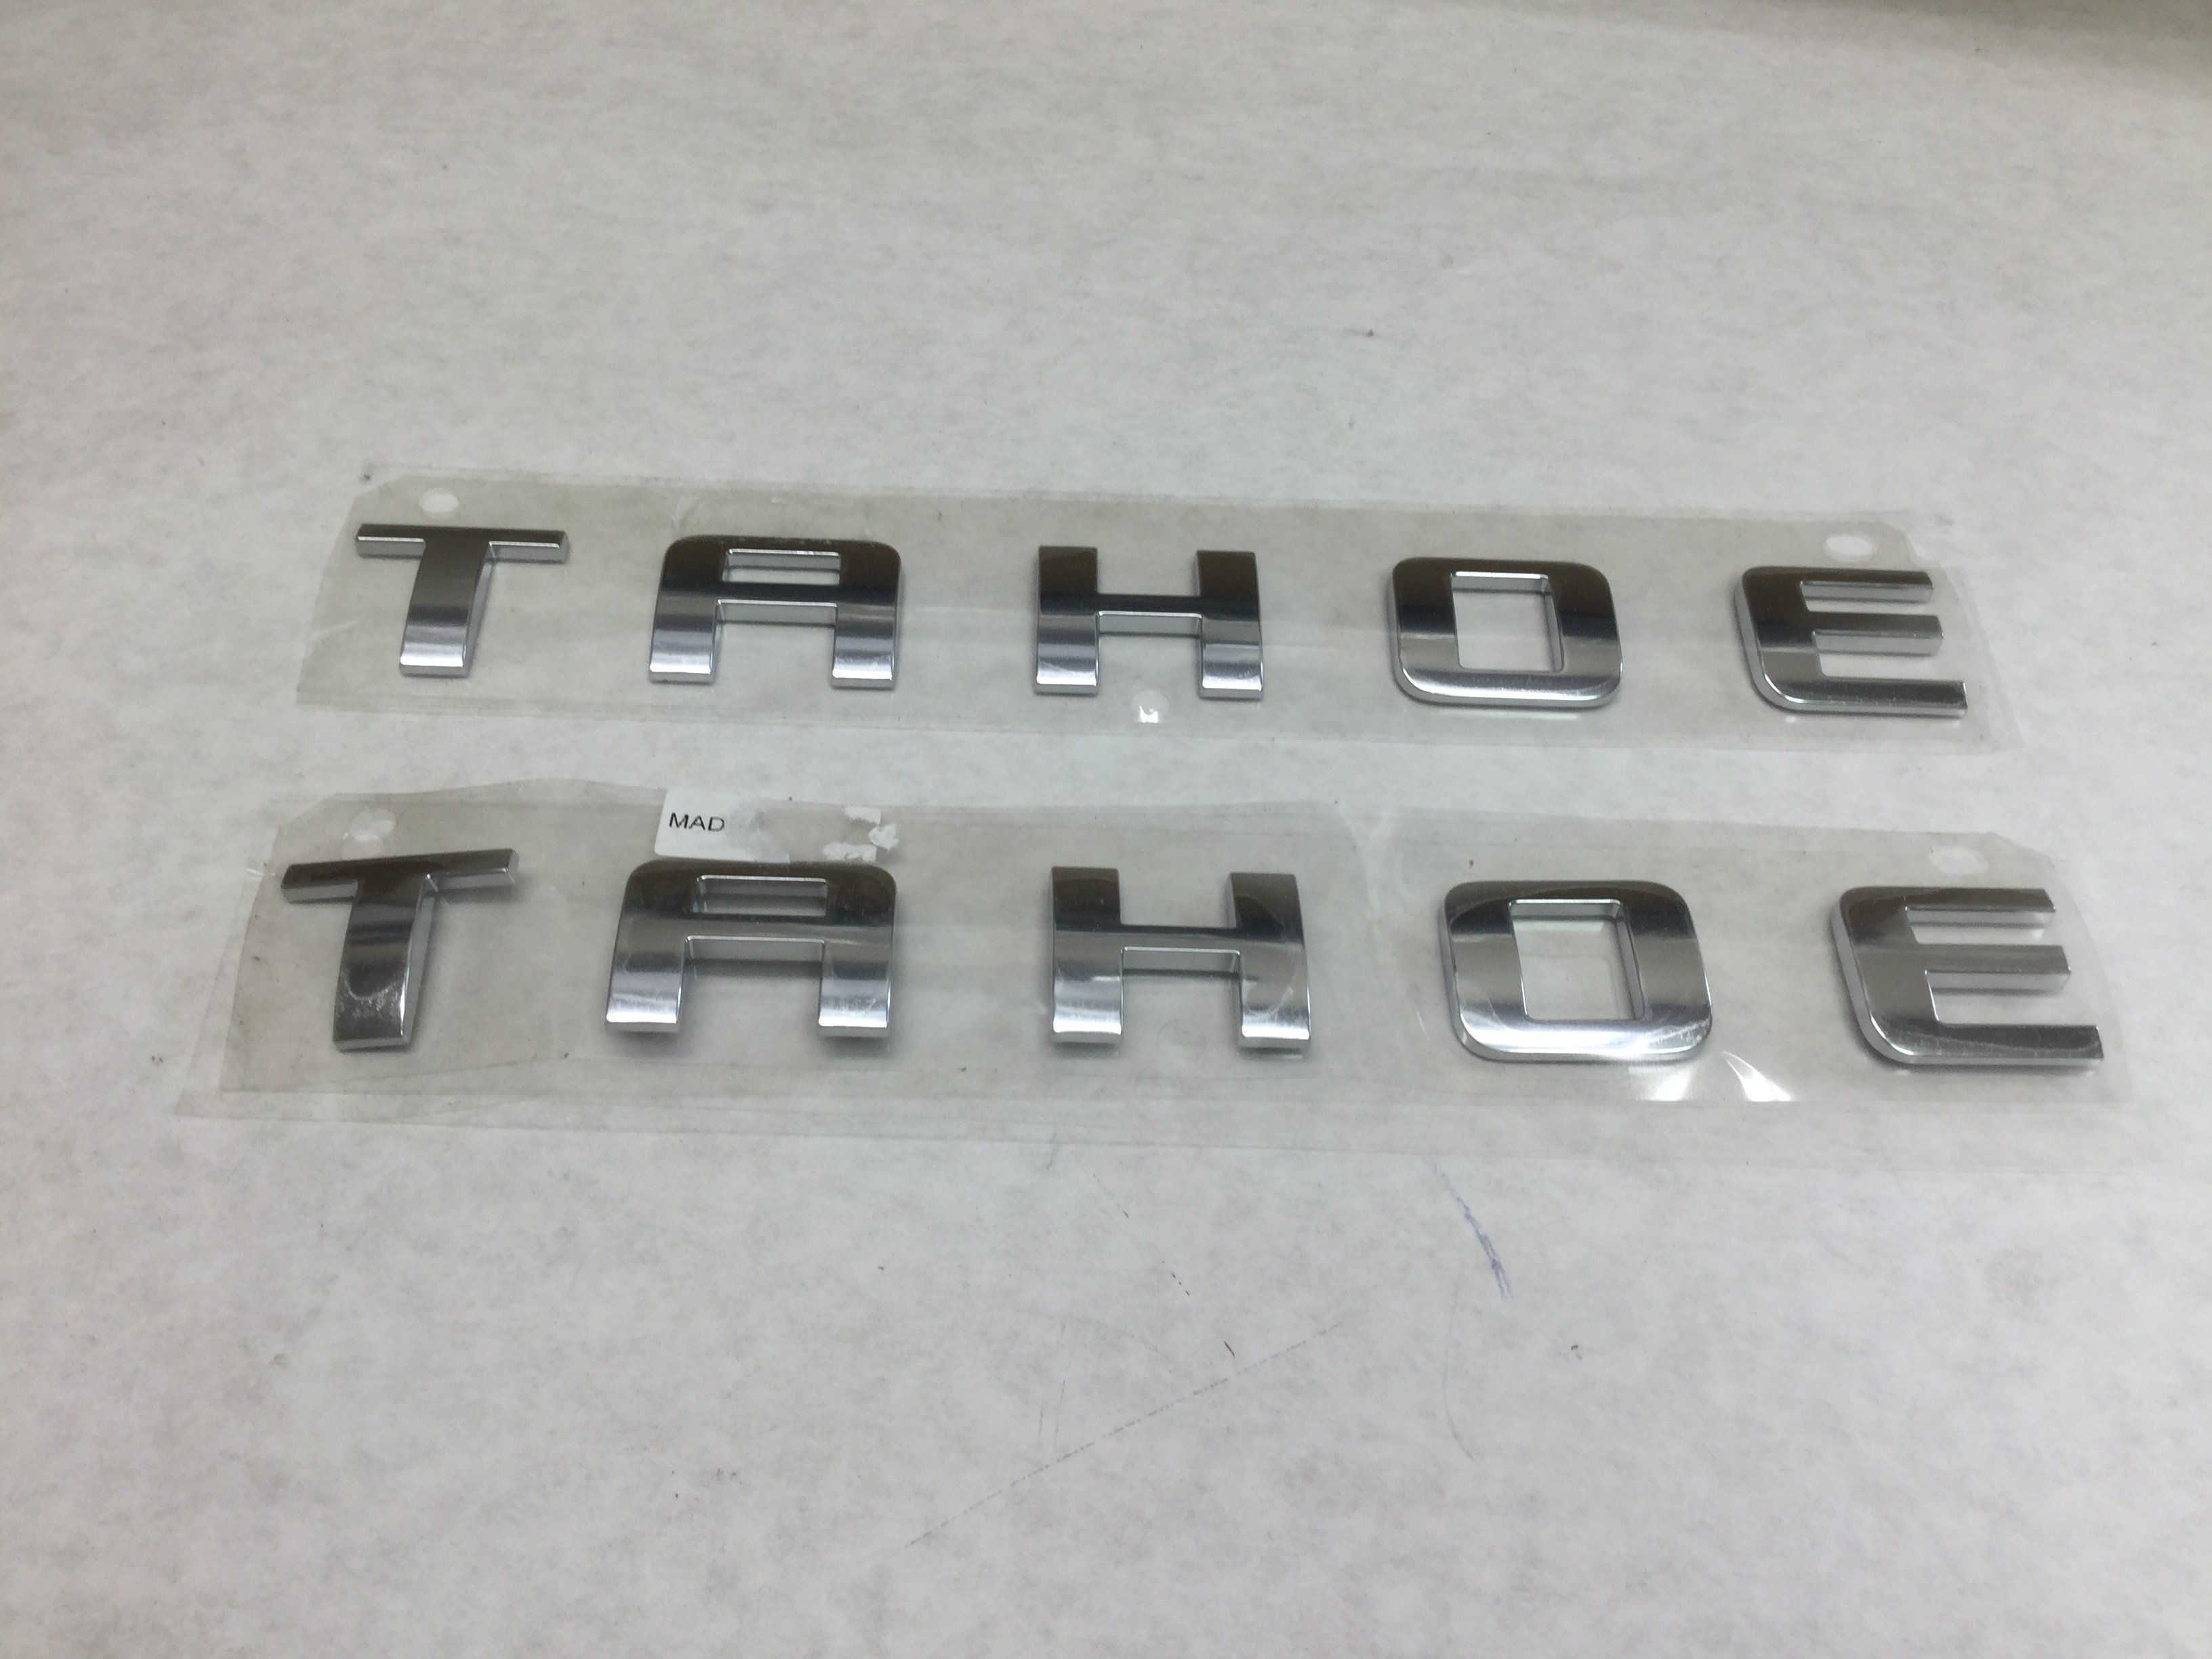 2007 2017 Chevy Tahoe 2 Chrome Door Emblems Nameplates Genuine Oem Parts Auto New Truck Genuine Car Chevy Tahoe Name Plate Tahoe Hybrid